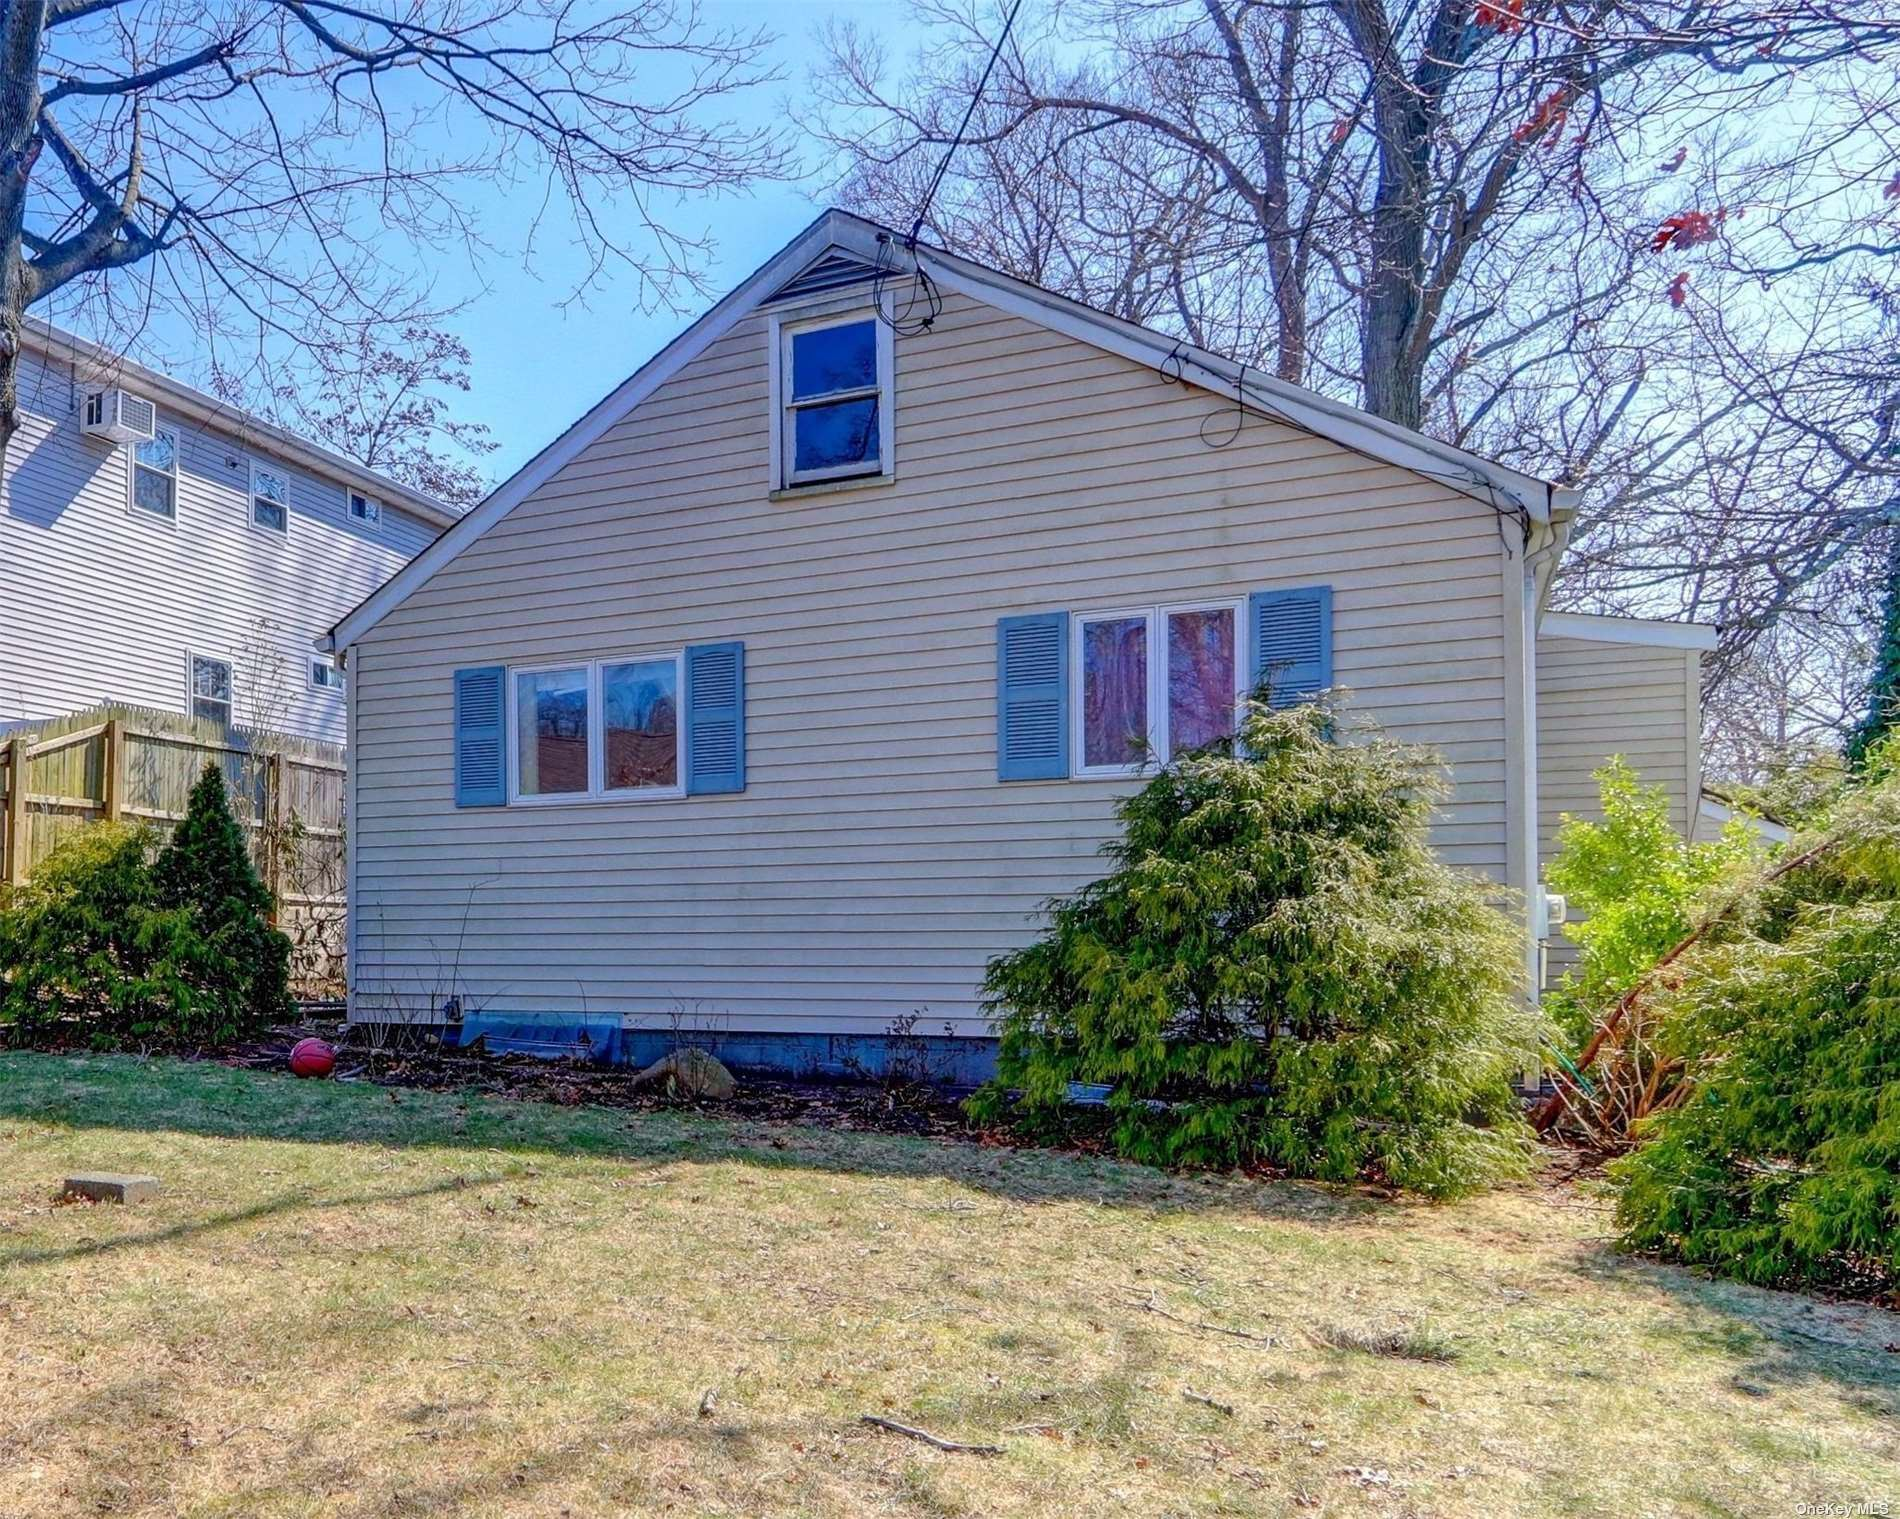 64 E 20th Street, Huntington Station, NY 11746 - MLS#: 3253879